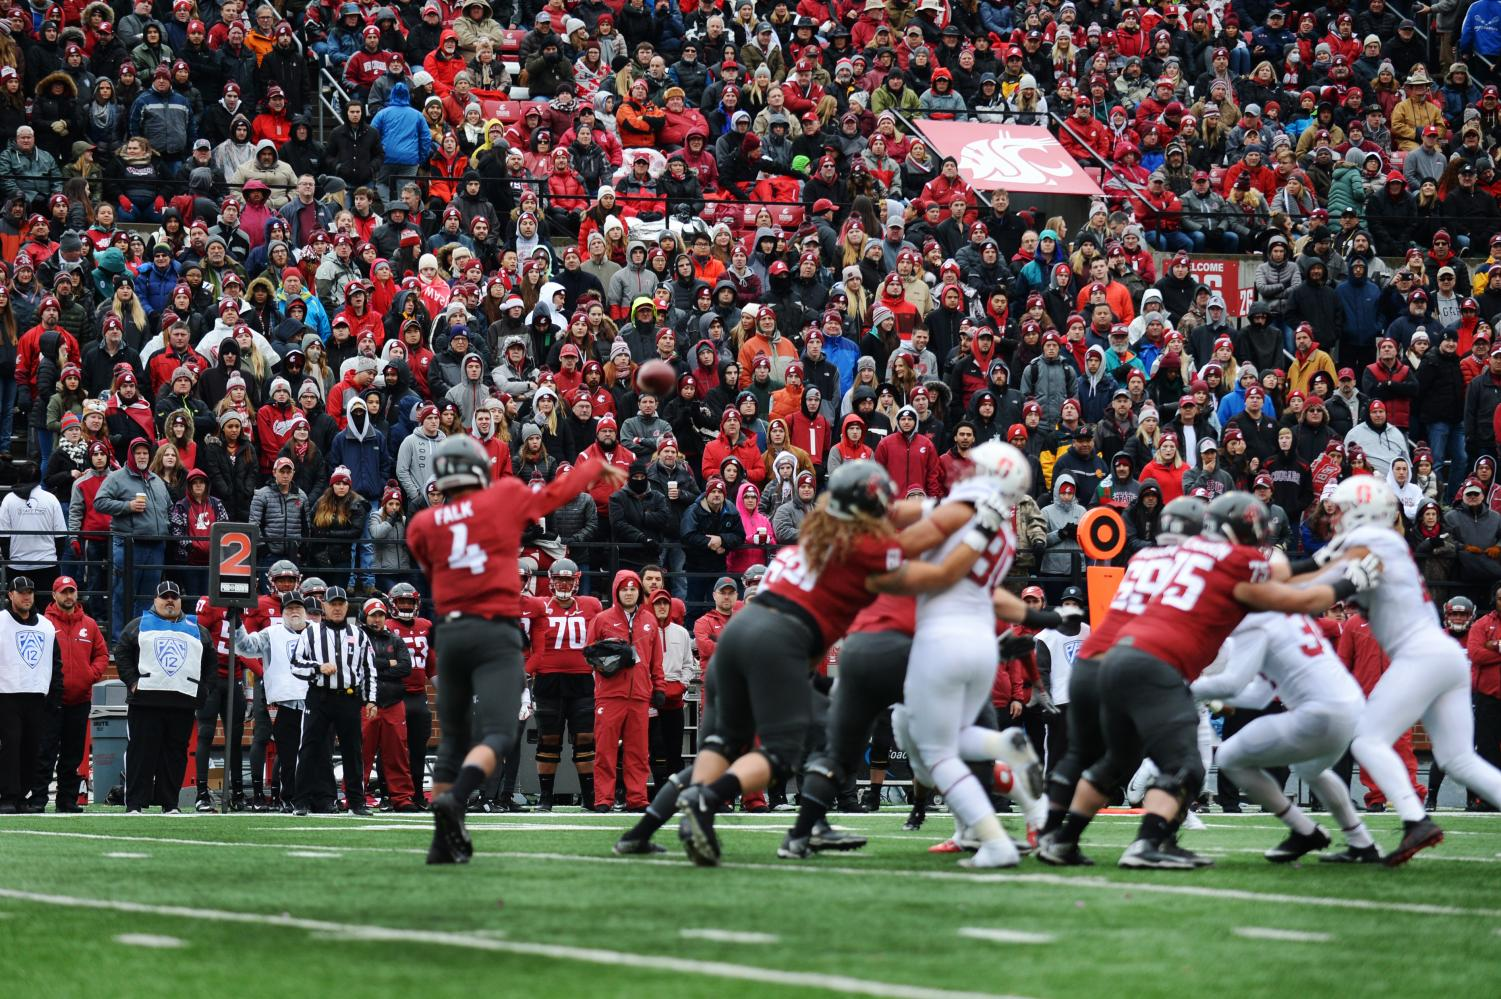 Then-redshirt senior quarterback Luke Falk throws a pass in Martin Stadium during a game against Stanford on Nov. 4, 2017